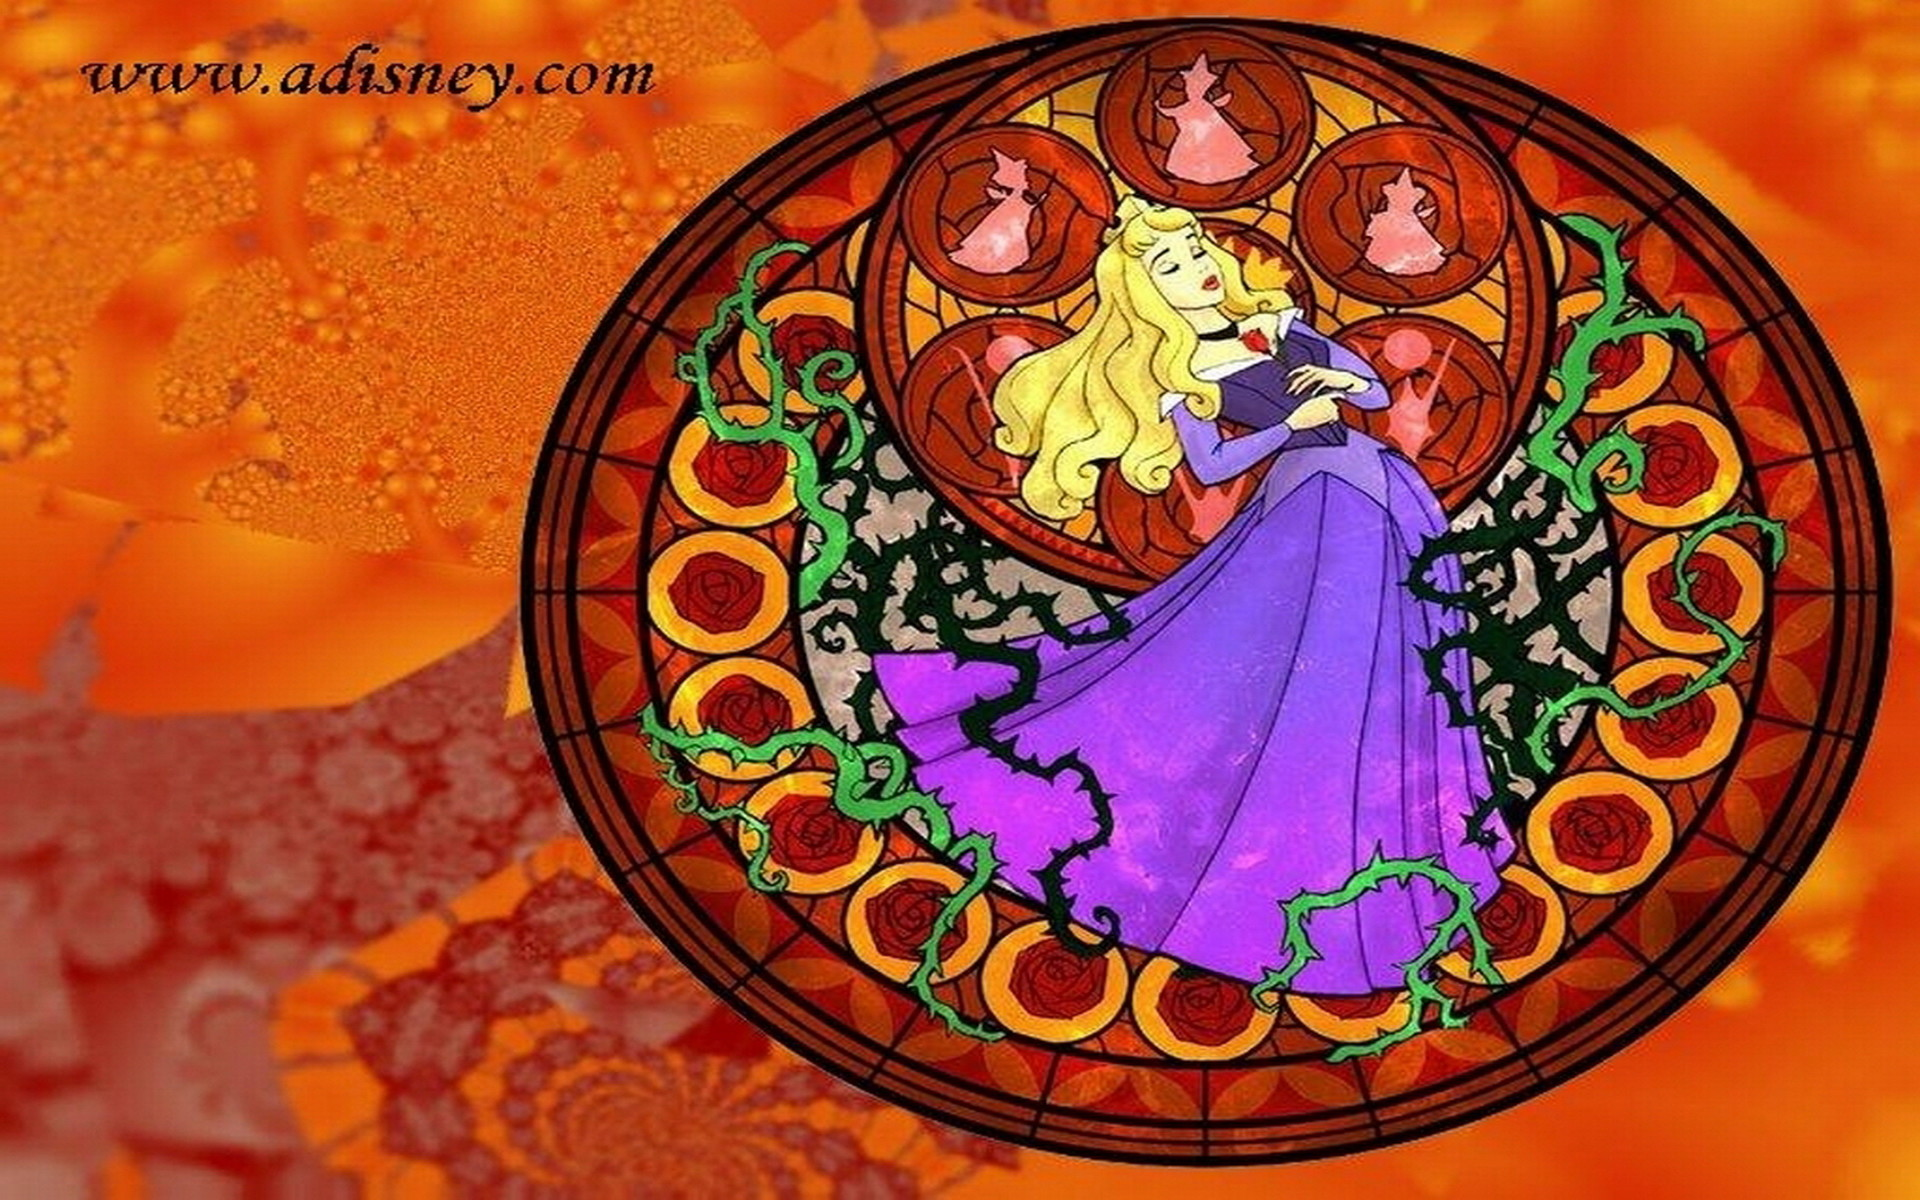 1920x1200 Sleeping Beauty Wallpaper Disney Princess 6538700 1024 768